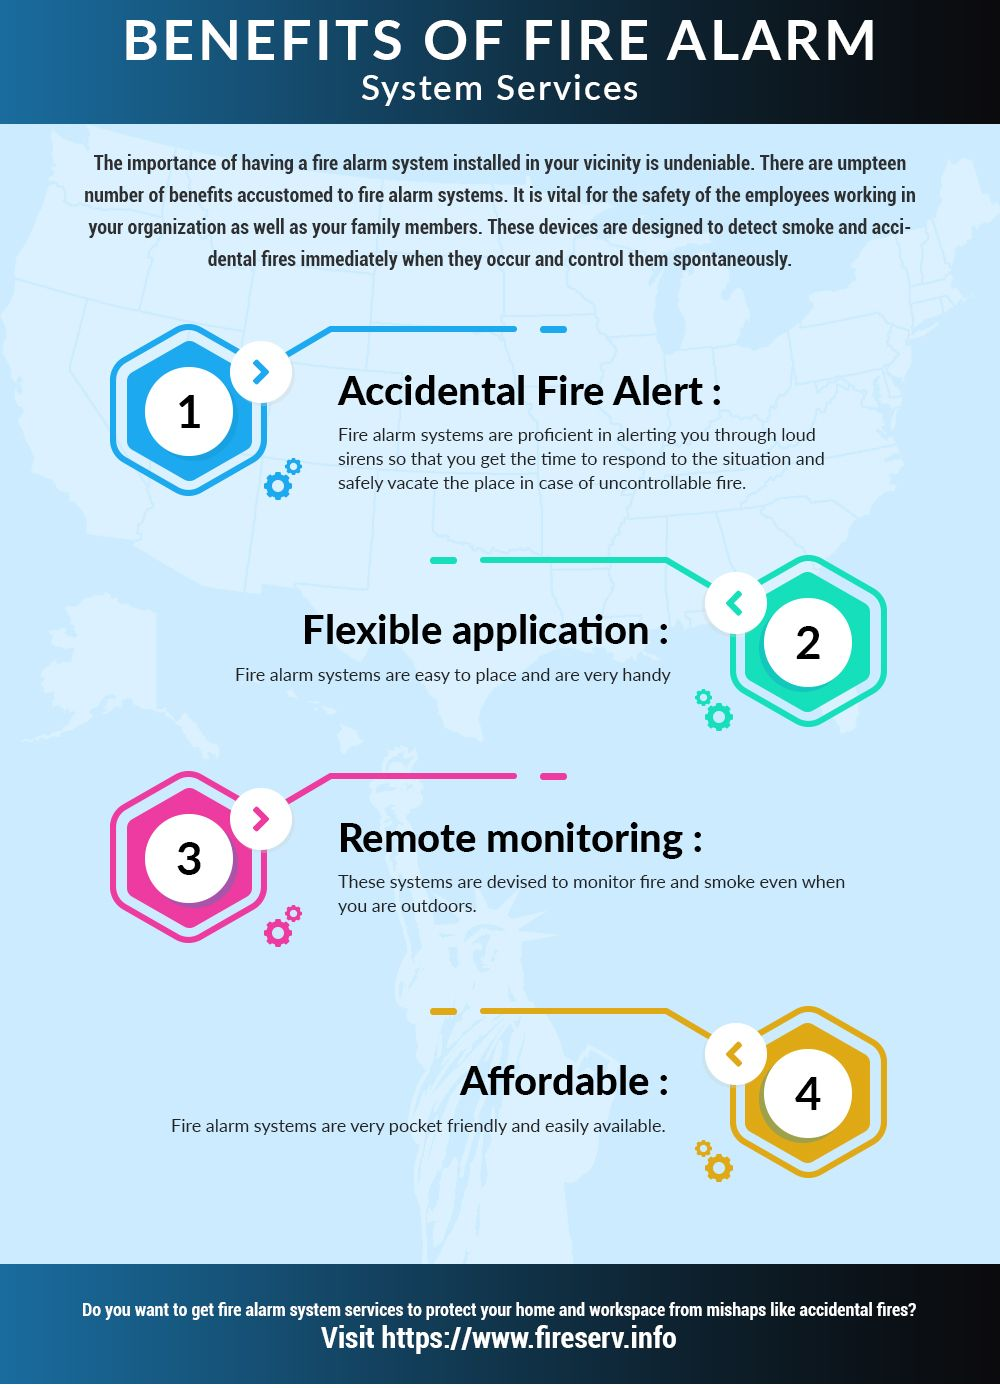 Do you want to get fire alarm system services to protect